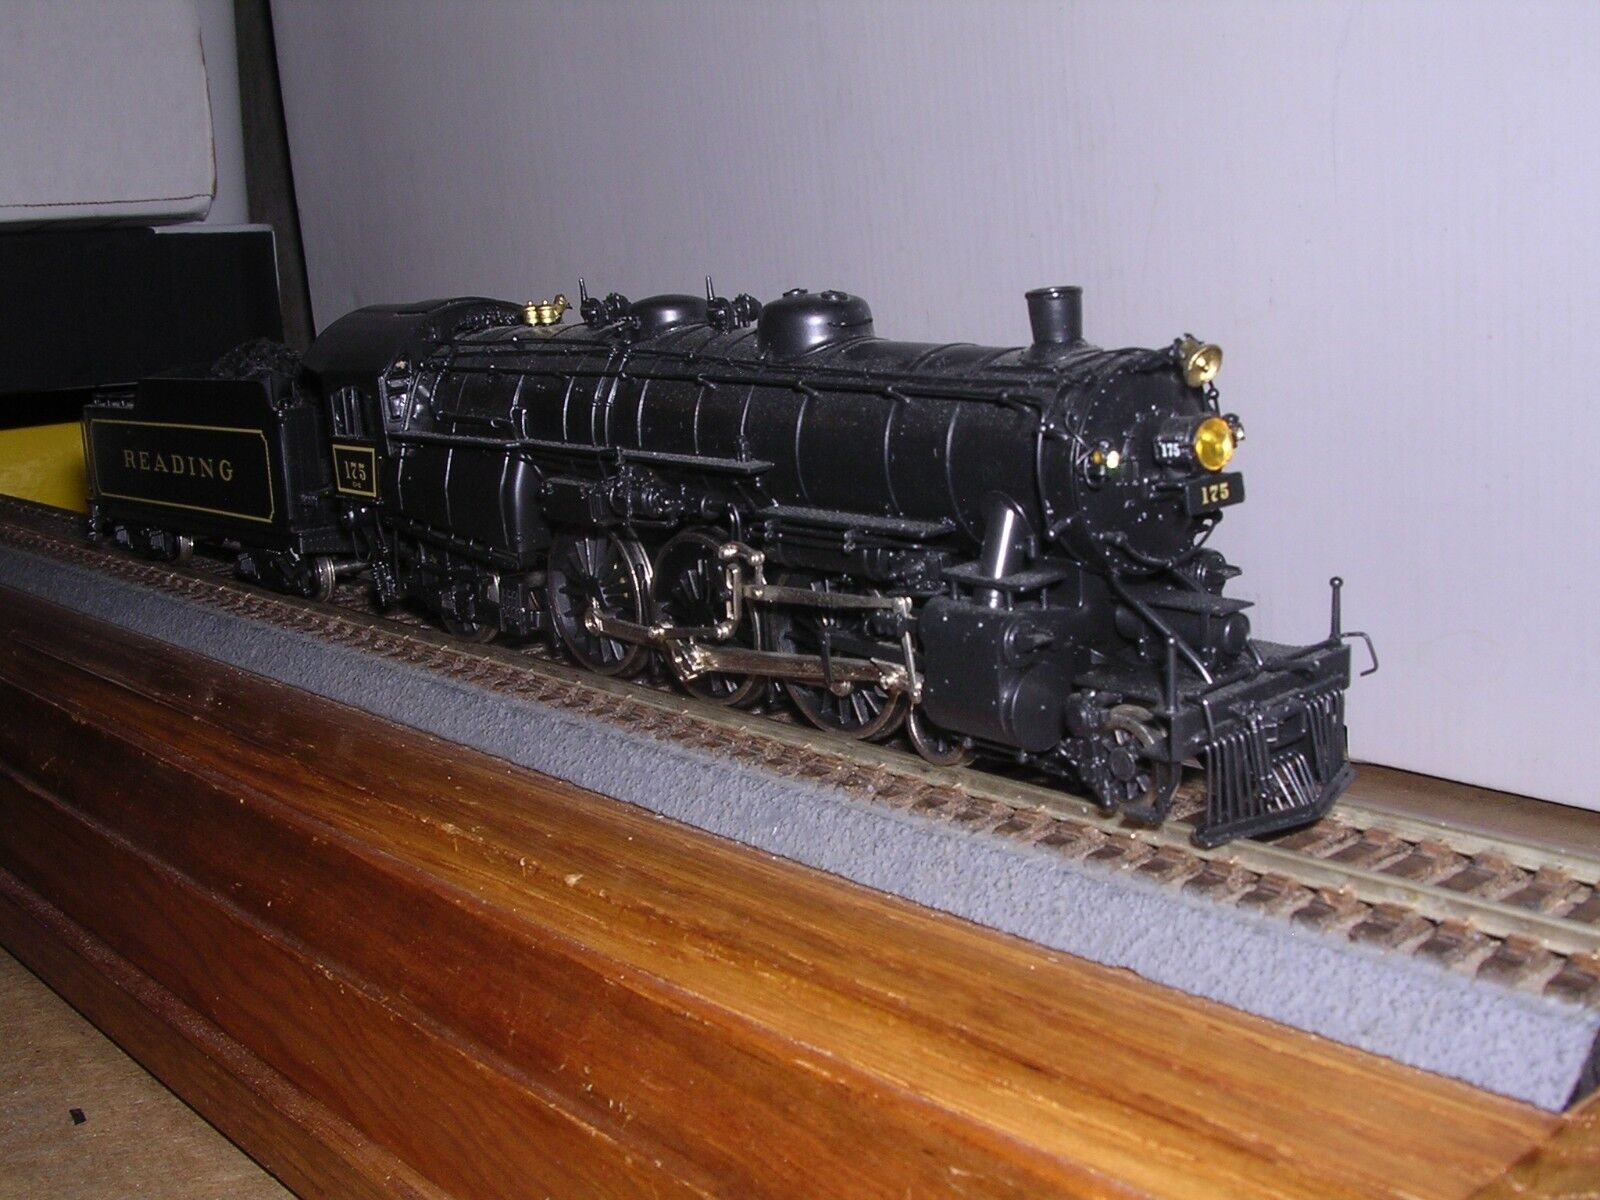 BRASS EMPIRE MIDLAND  DL-108   Reading G-2sa 4-6-2 Steam Loco  H.O.  1 87